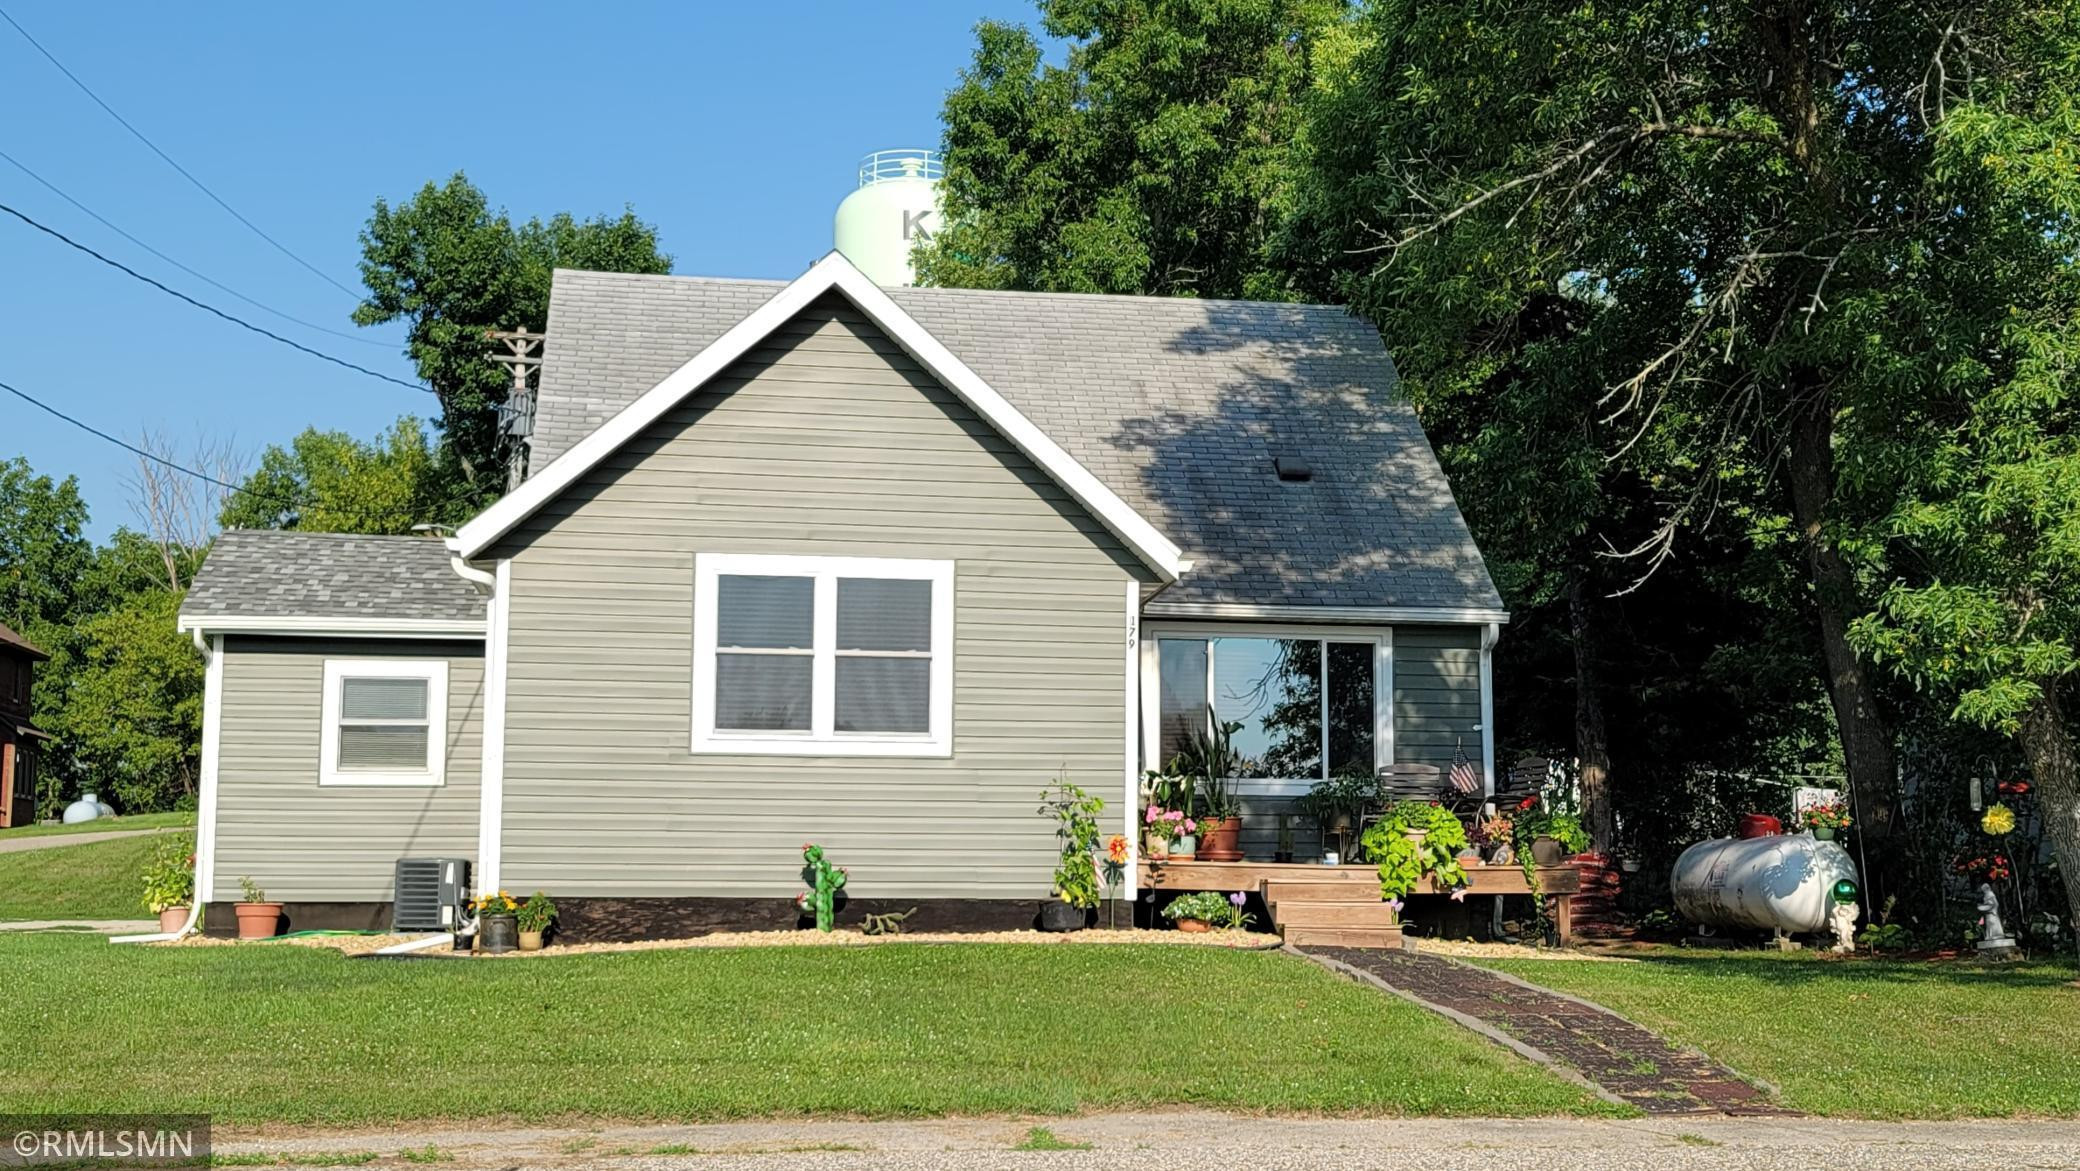 Charming home at 179 Railroad Avenue North in Kilkenny, MN